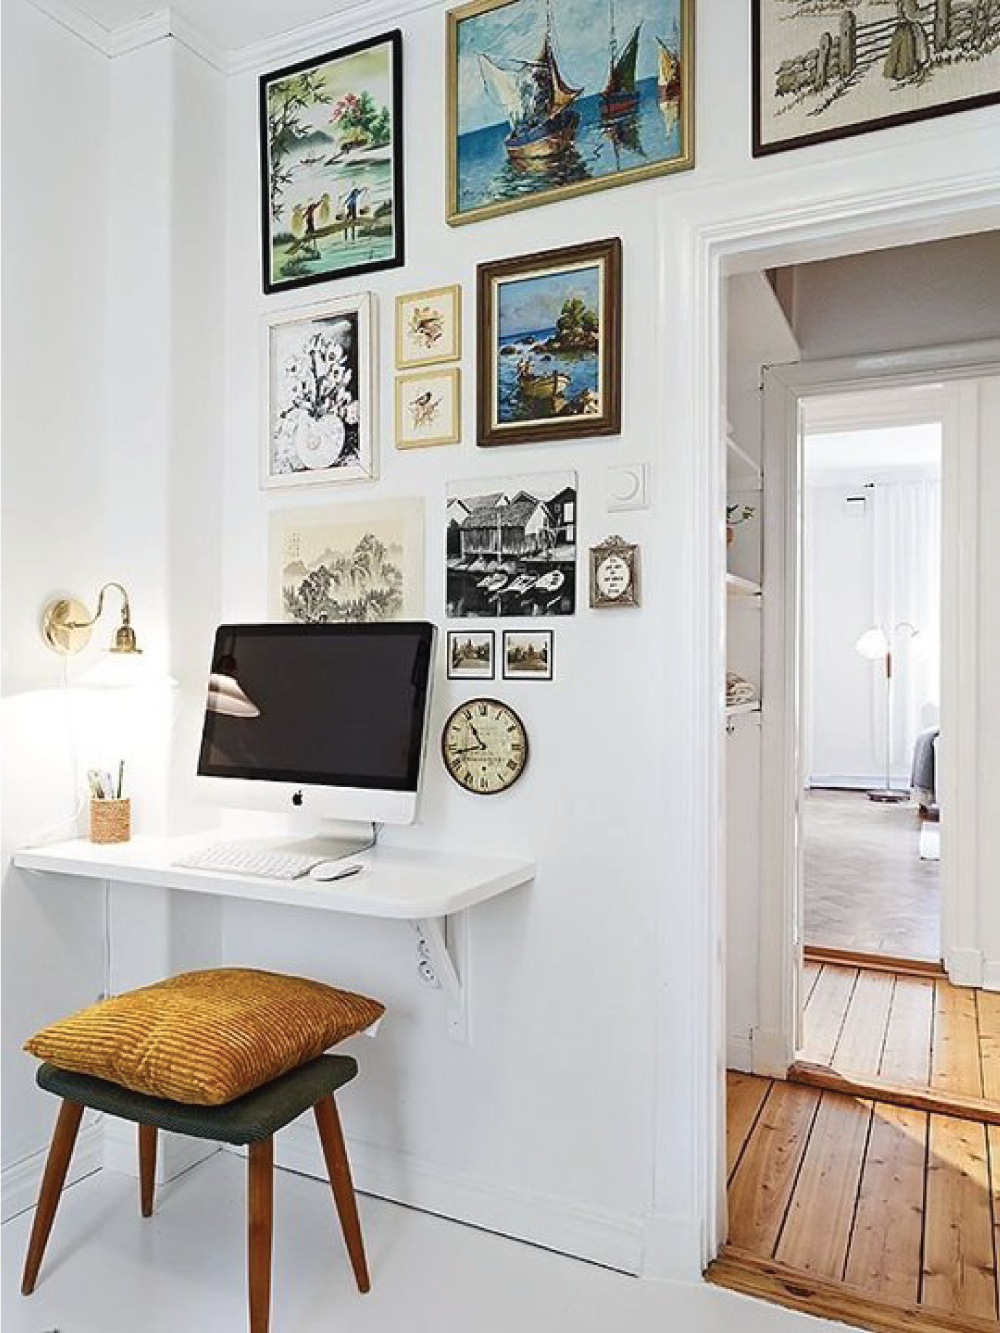 15 Very Small Desk Ideas That Will Surprise You With The Functionality